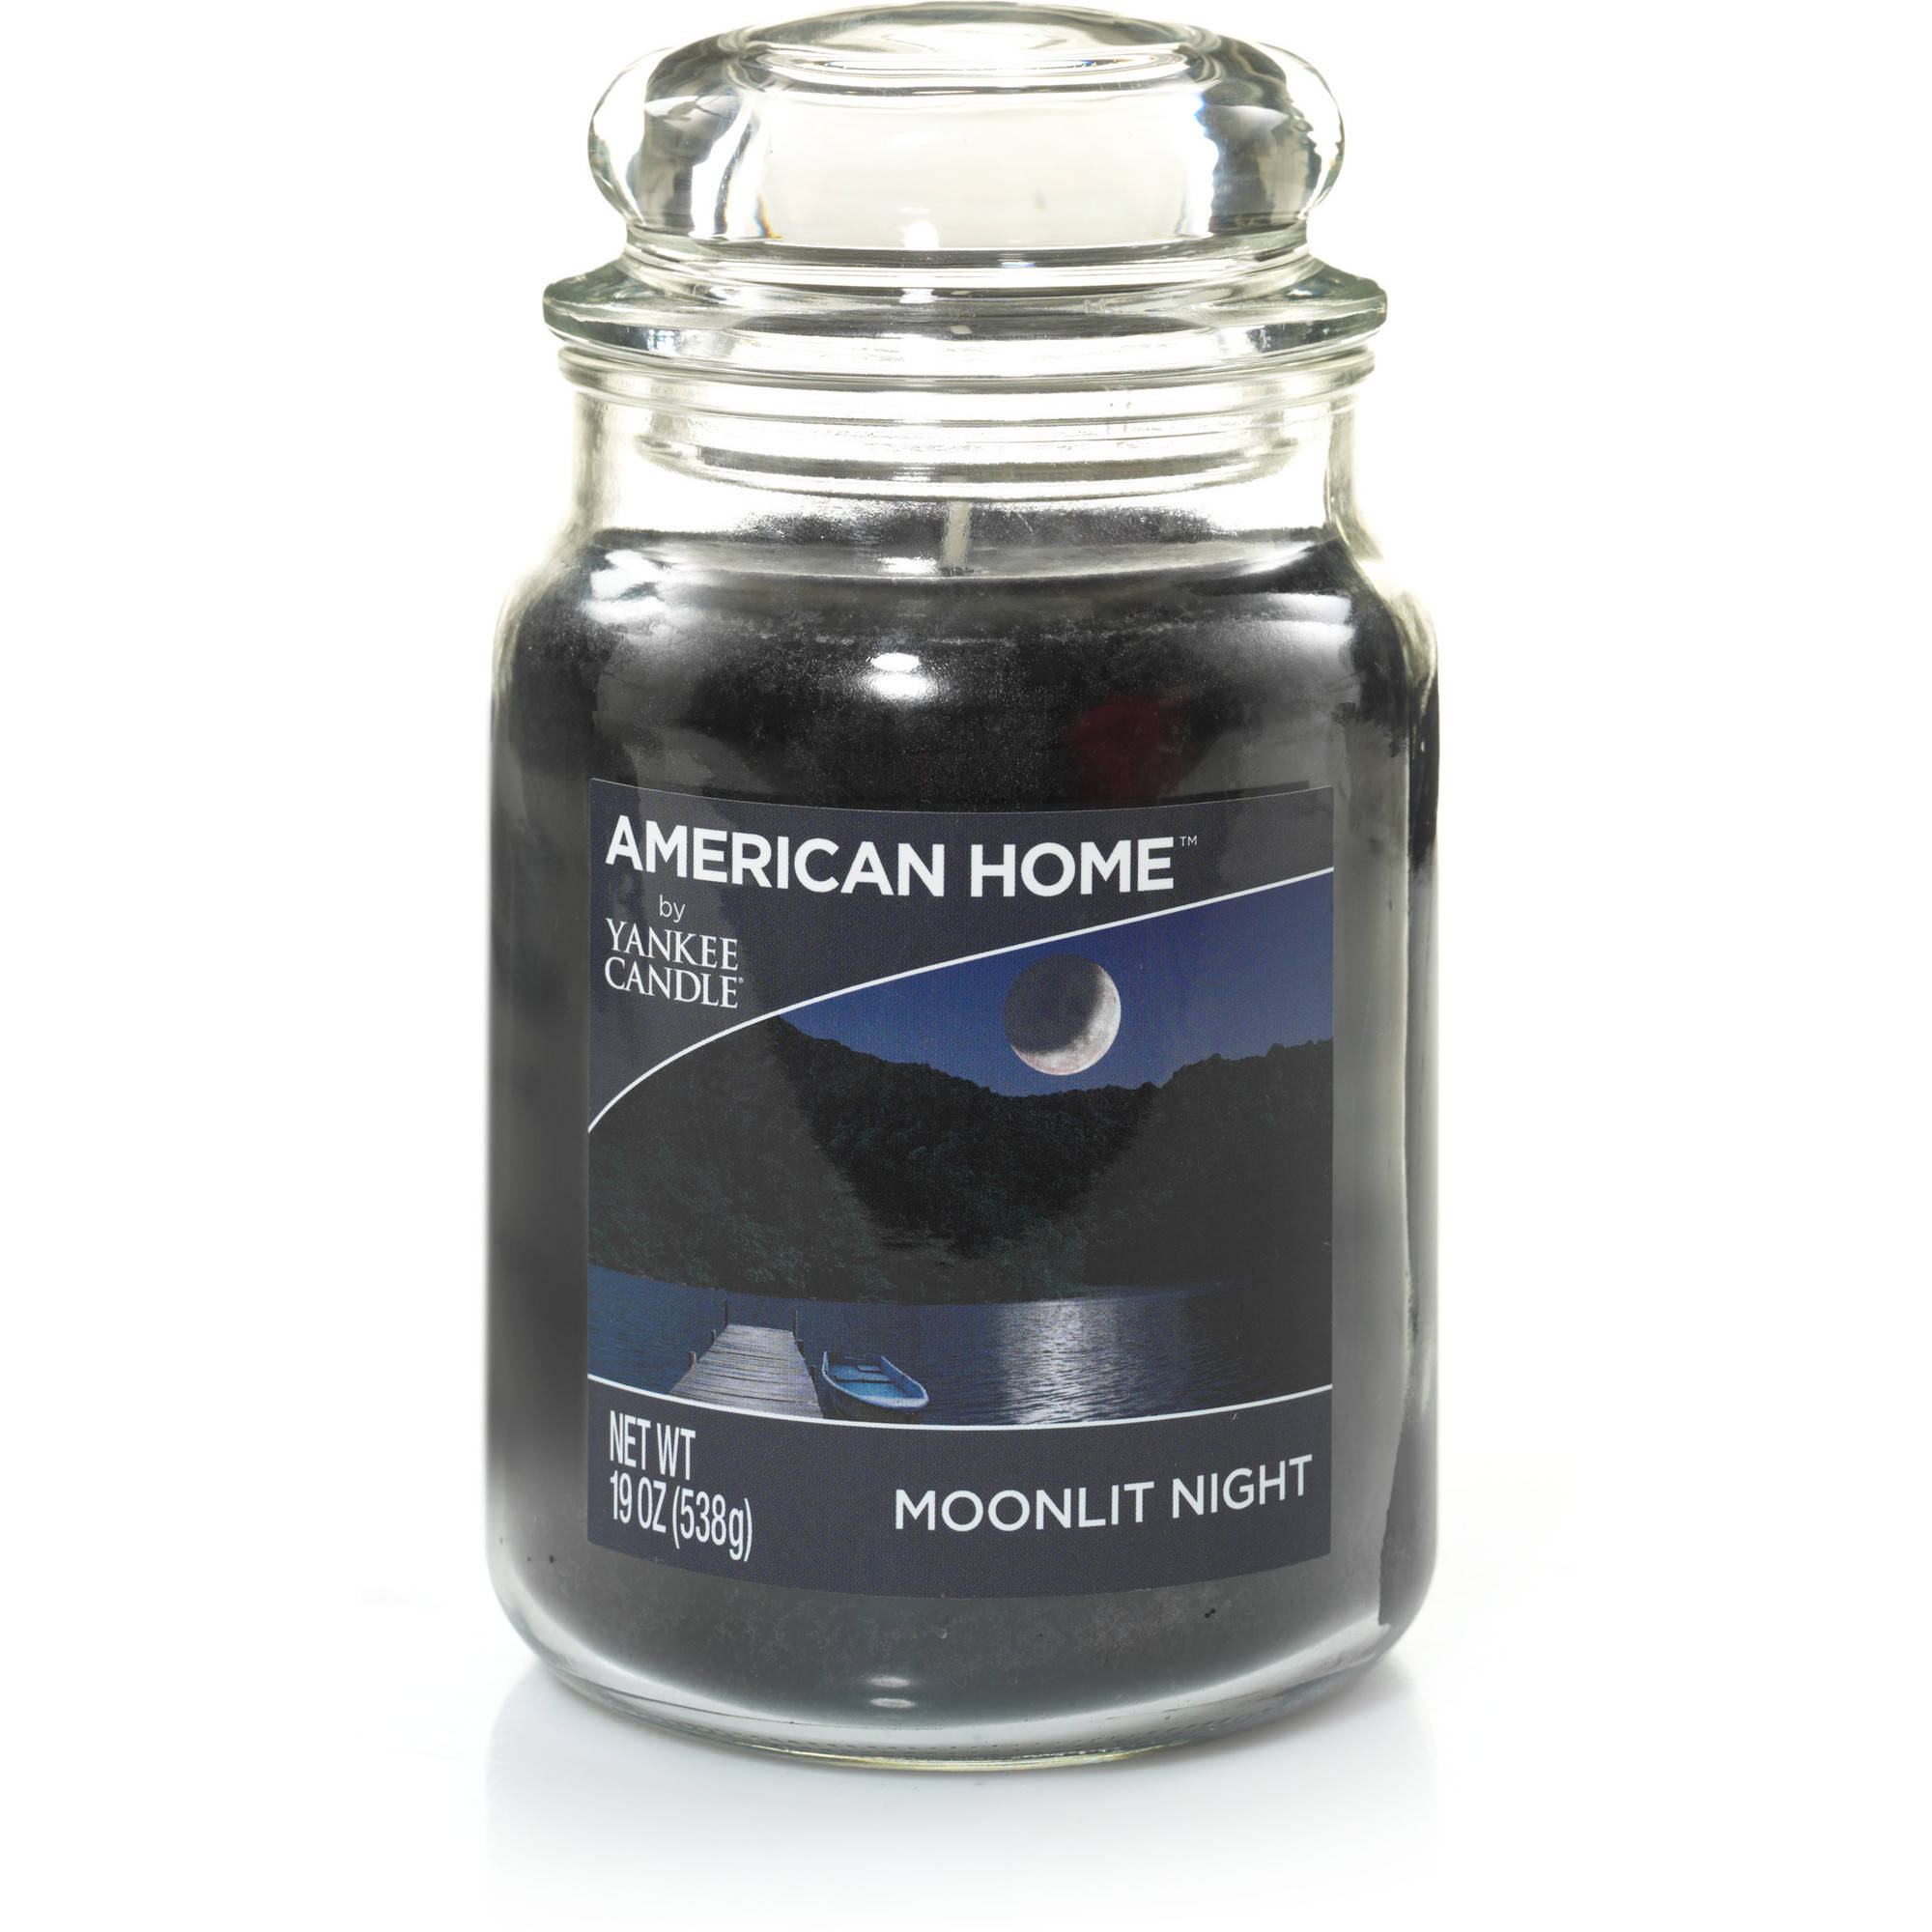 American Home by Yankee Candle Moonlit Night, 19 oz Large Jar